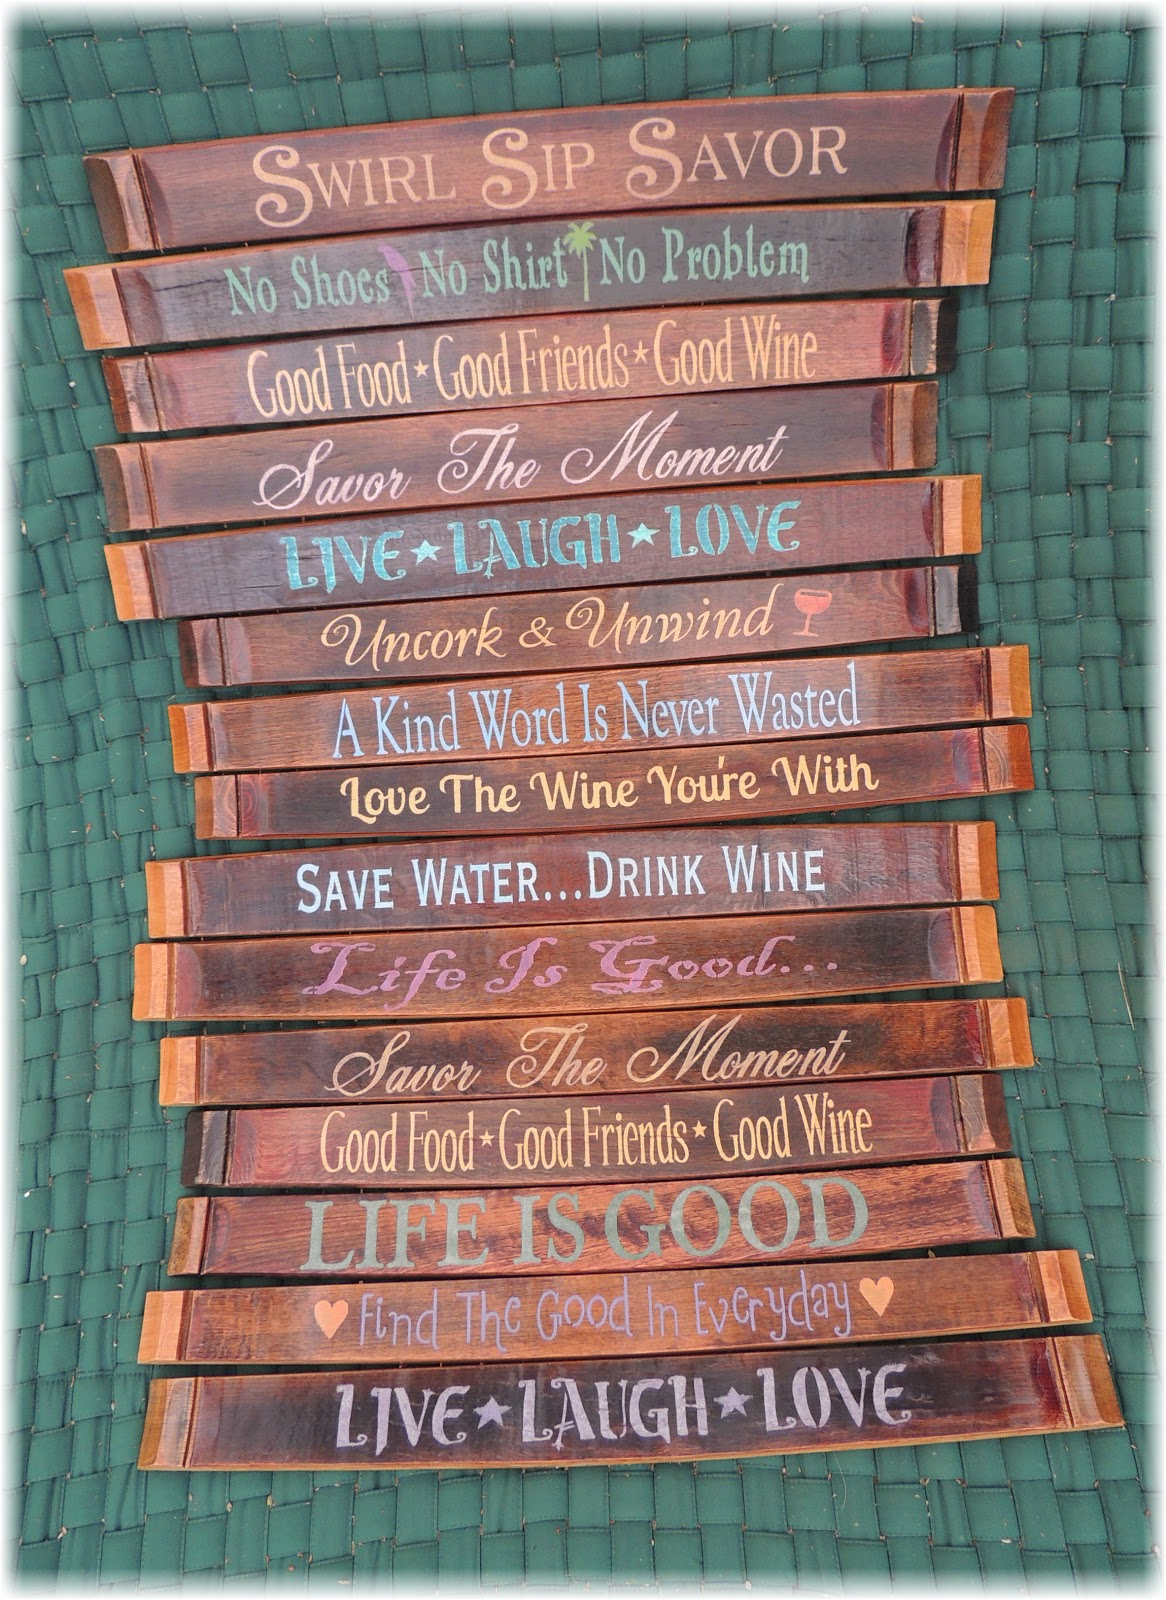 Cork To Barrel: Wine Barrel Stave Signs